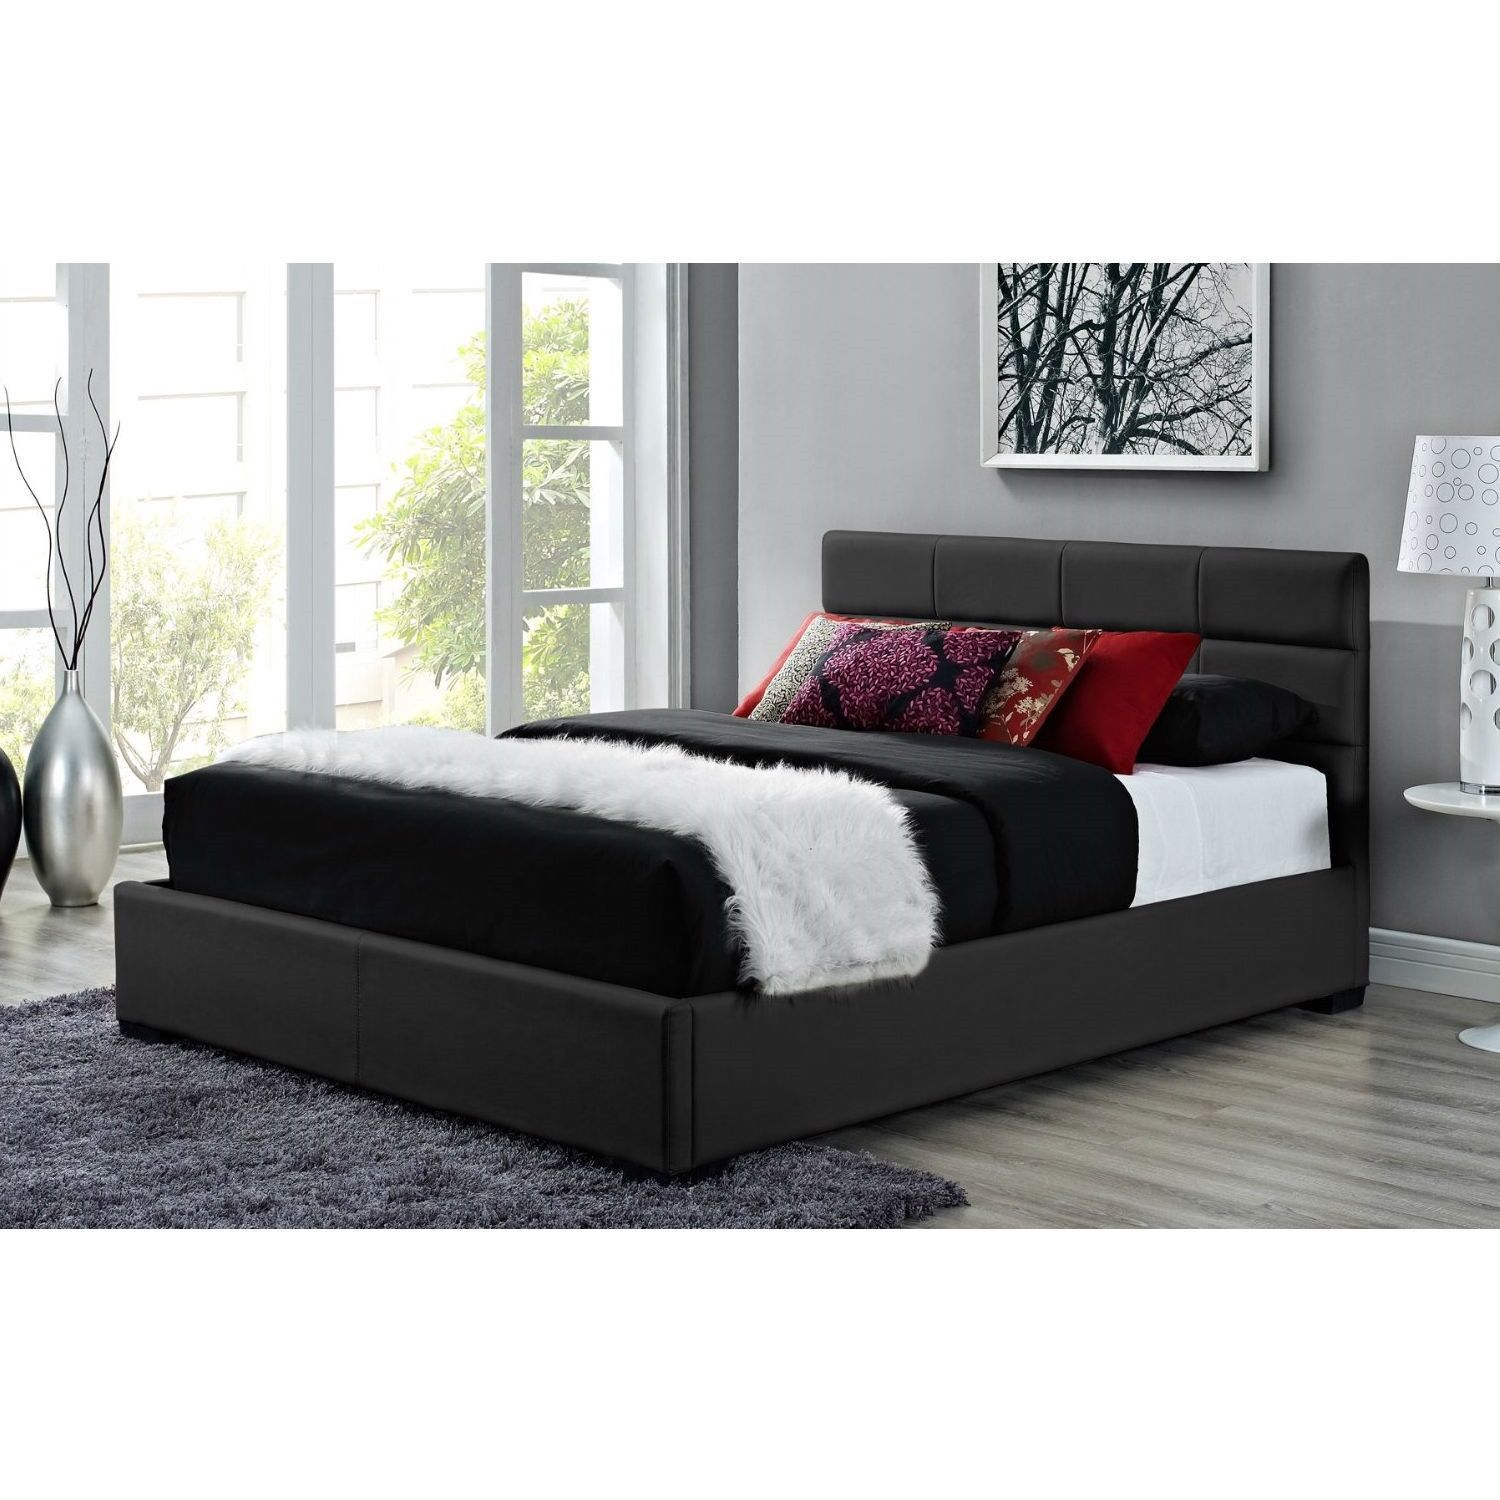 Queen size Black Faux Leather Upholstered Platform Bed Frame with ...